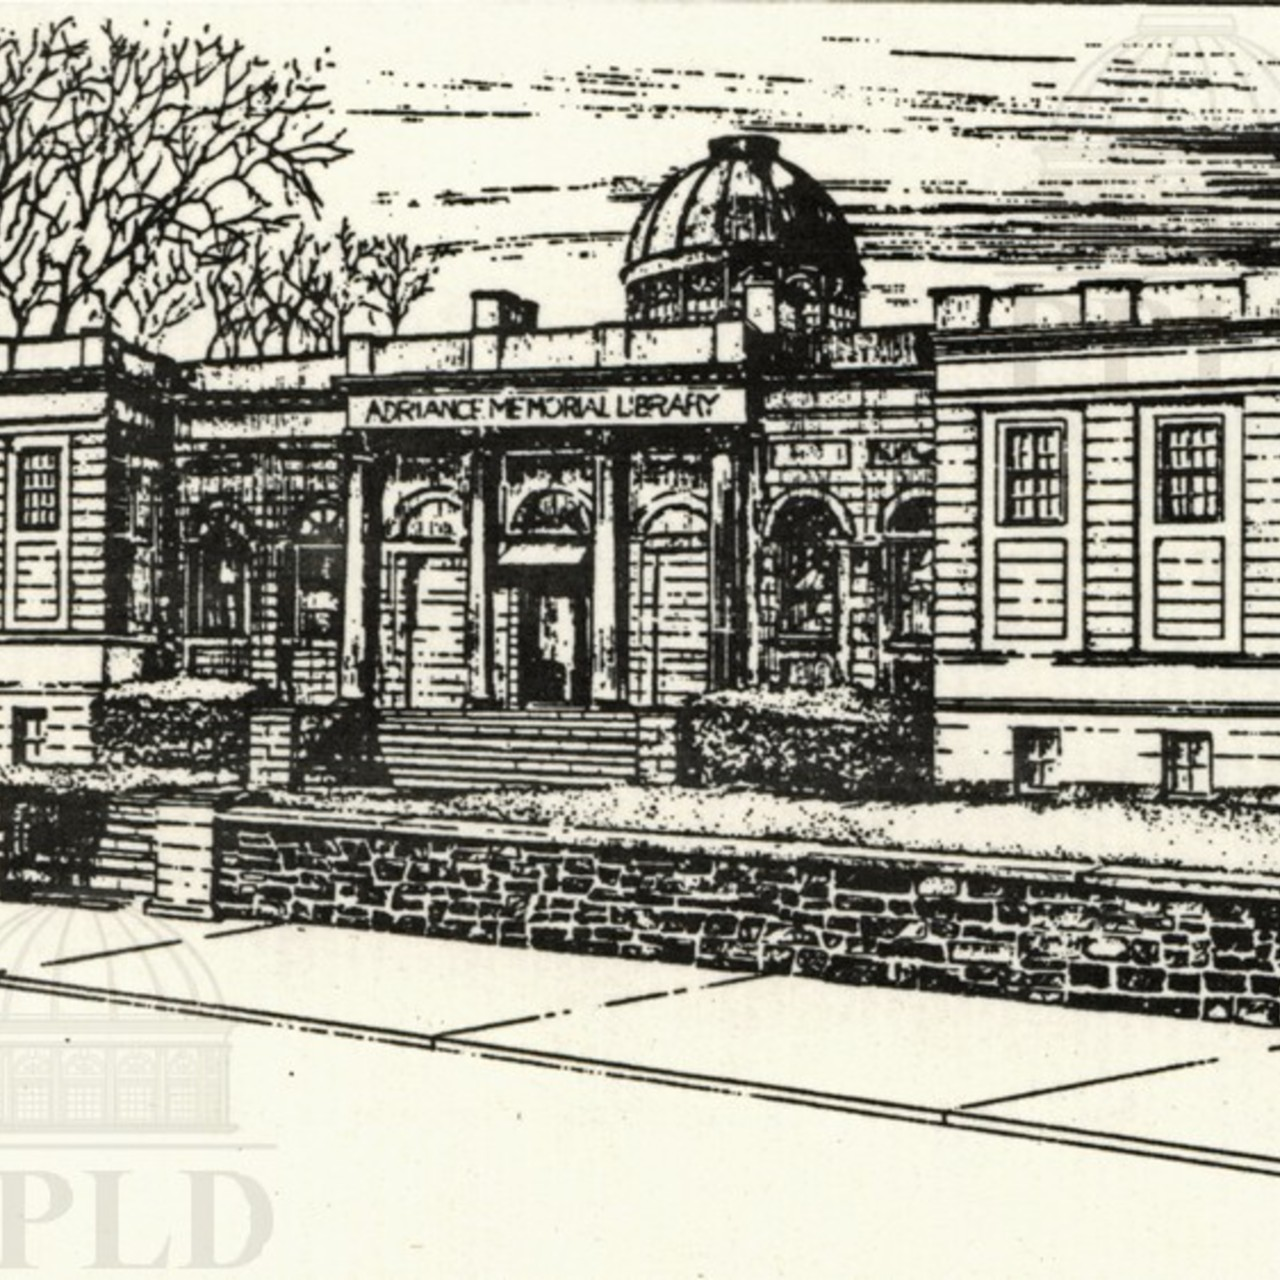 Illustration of Adriance Memorial Library